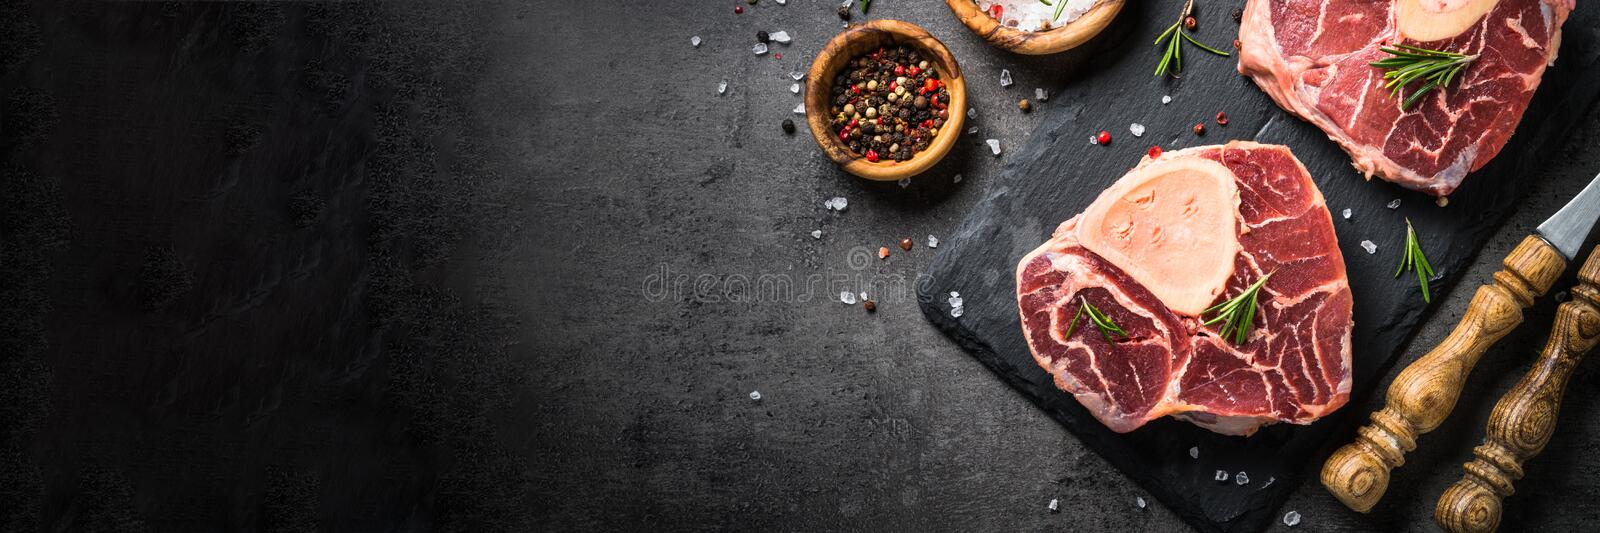 Raw beef steak osso bucco on black. Marble meat. royalty free stock images